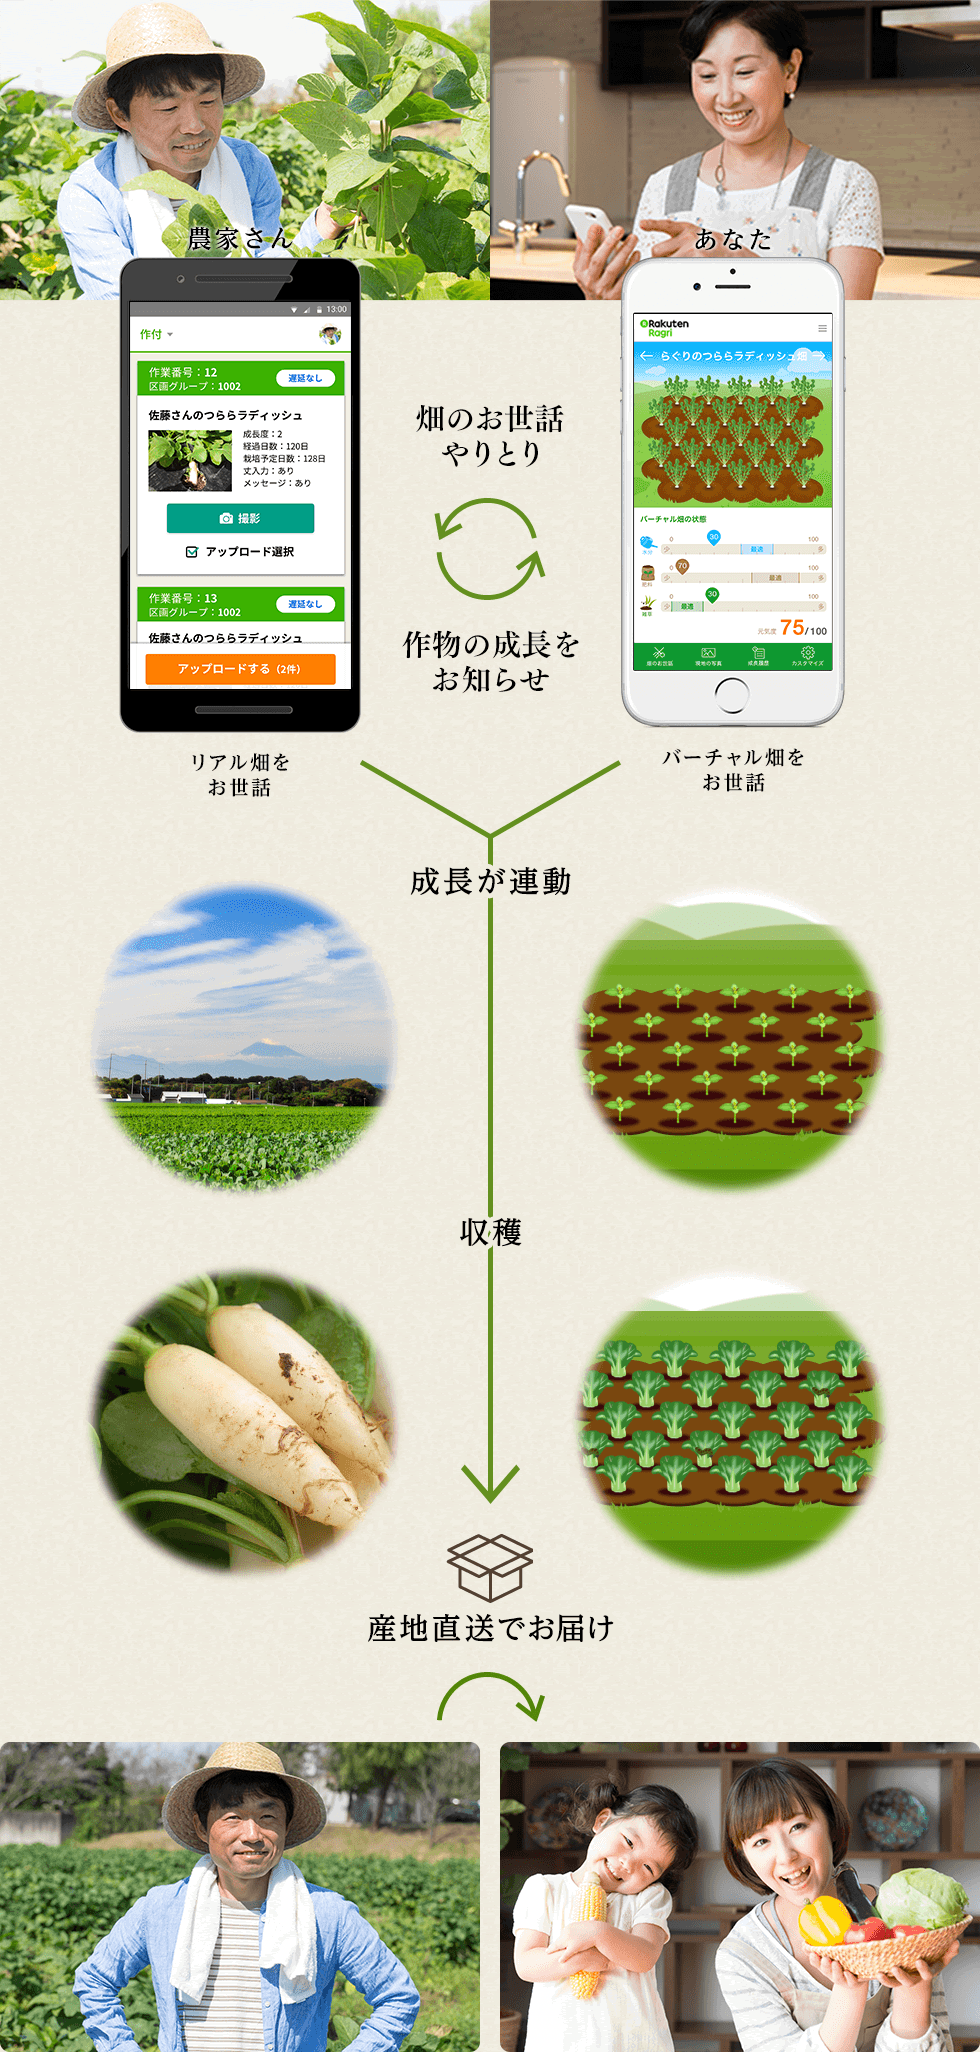 https://agriculture.rakuten.co.jp/farm/assets/lp/img/fifthArea_img_01_pc.png